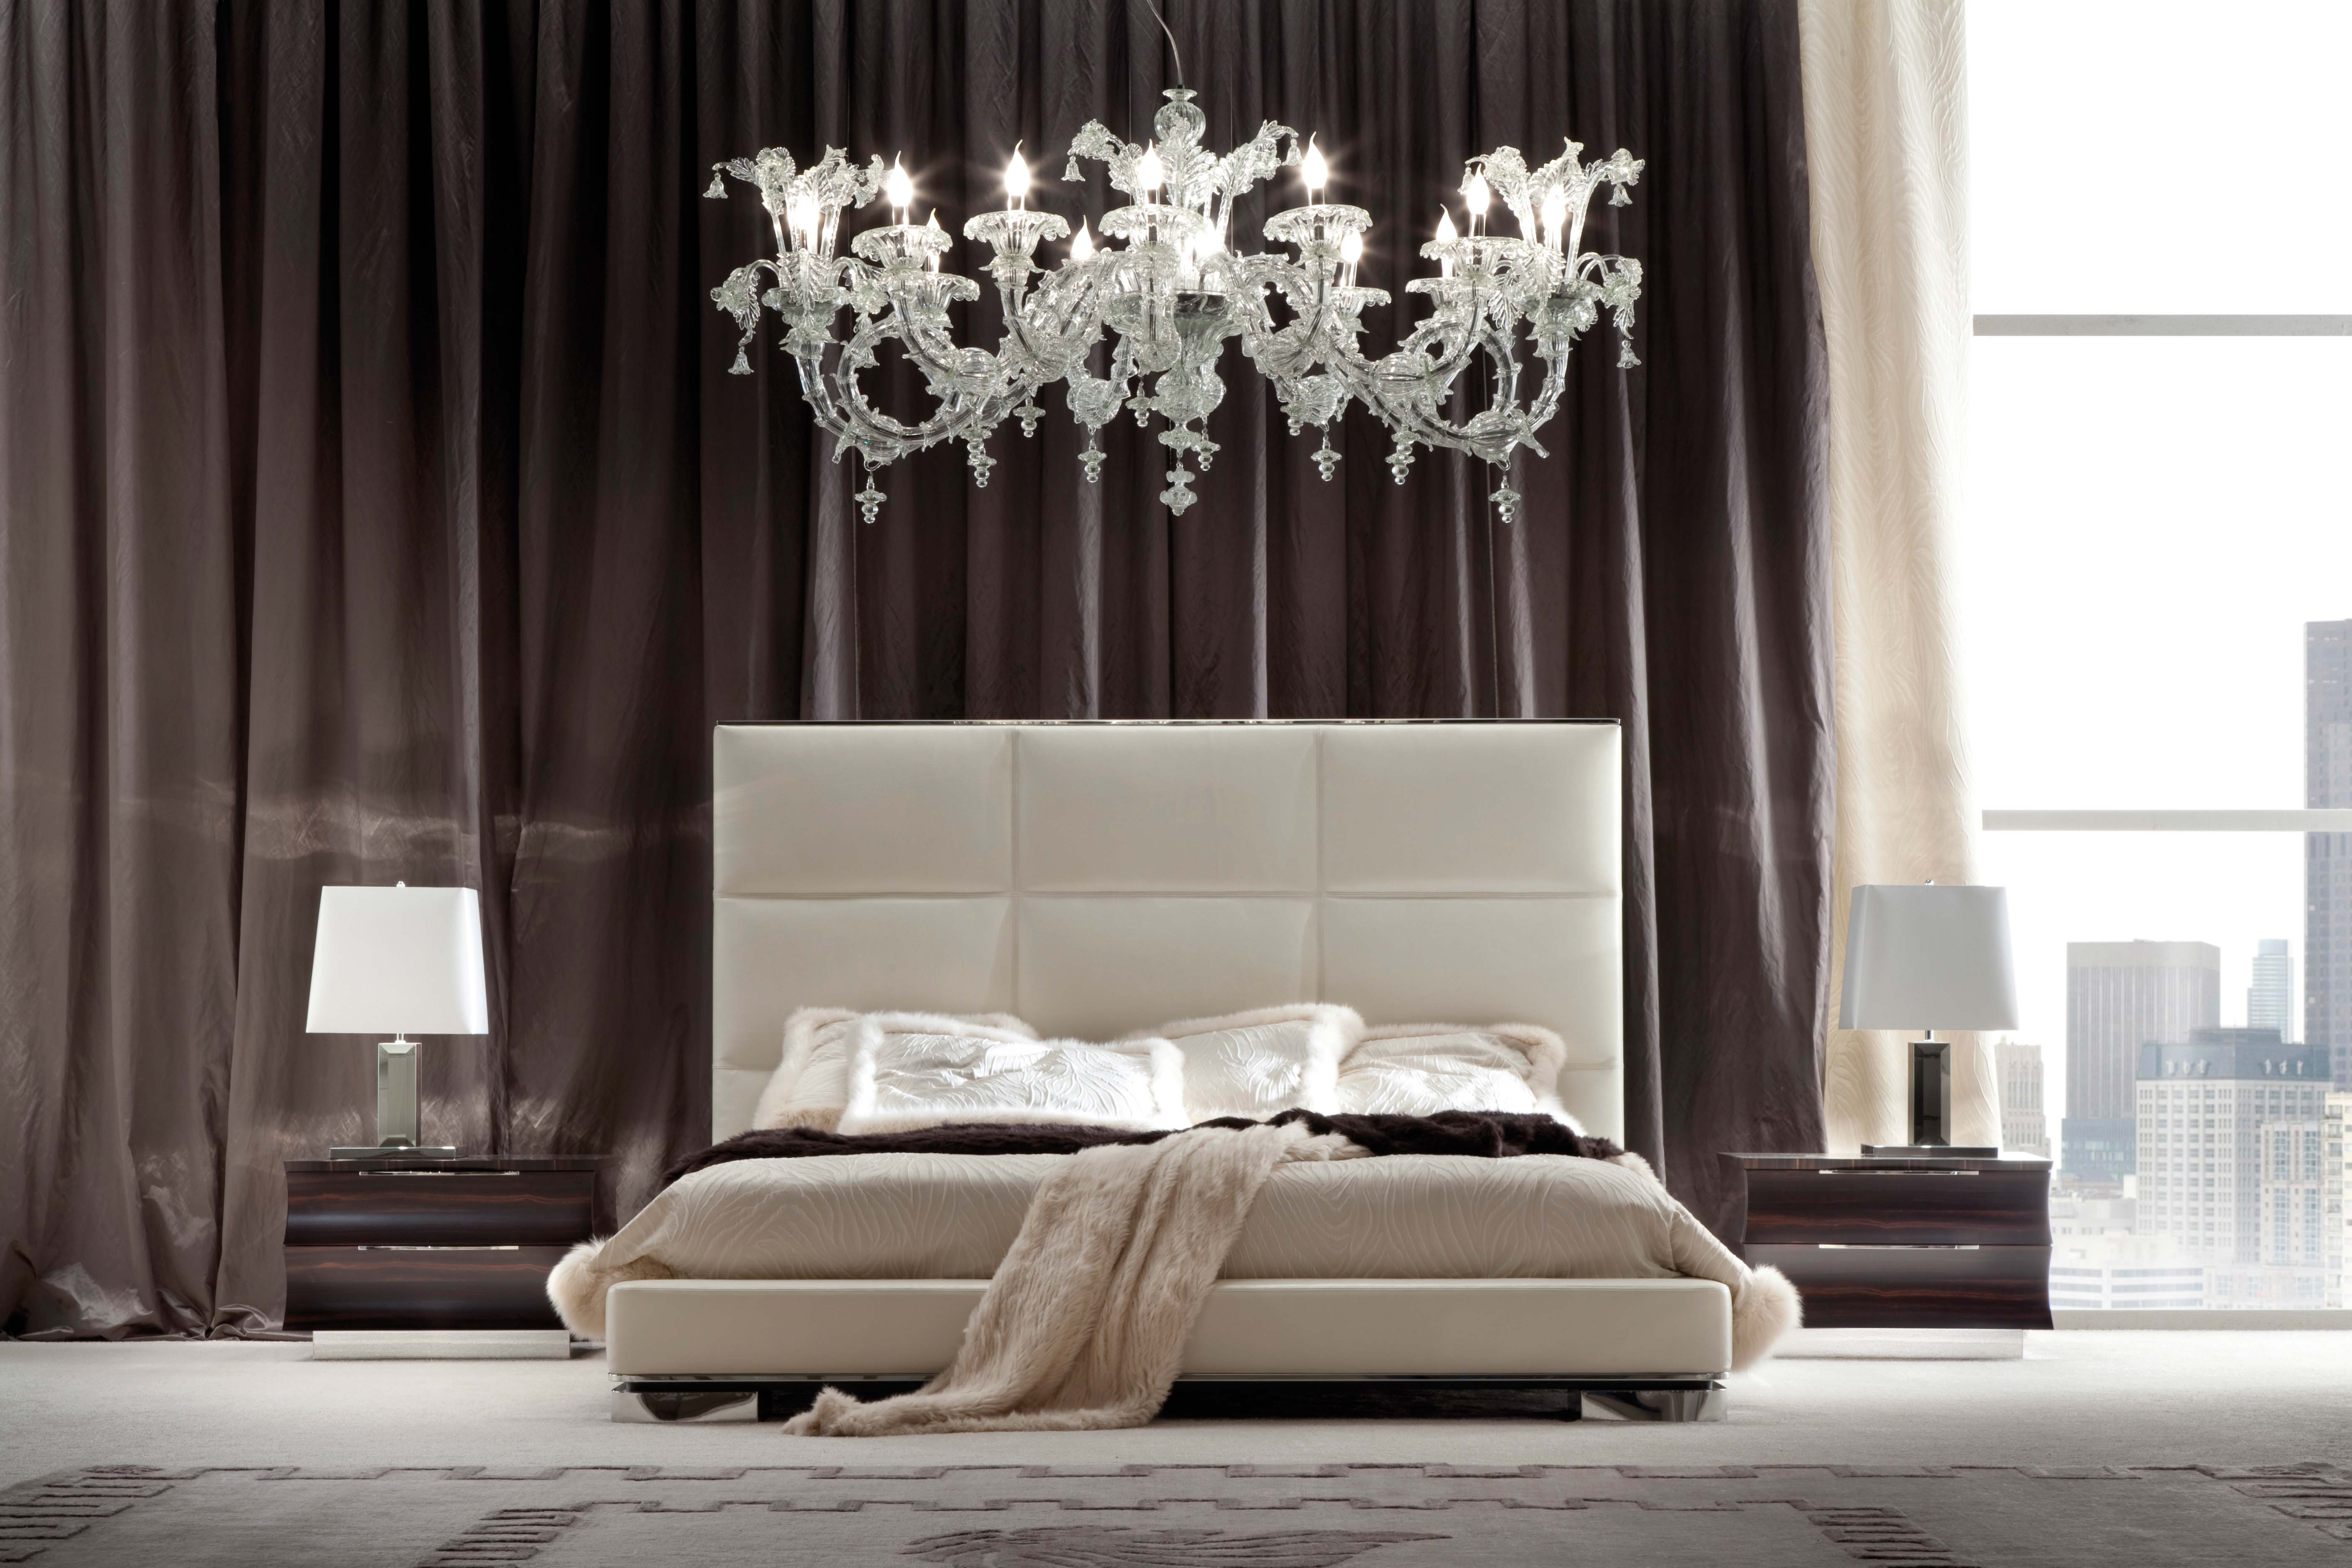 GC_DayDream_Bed(2)